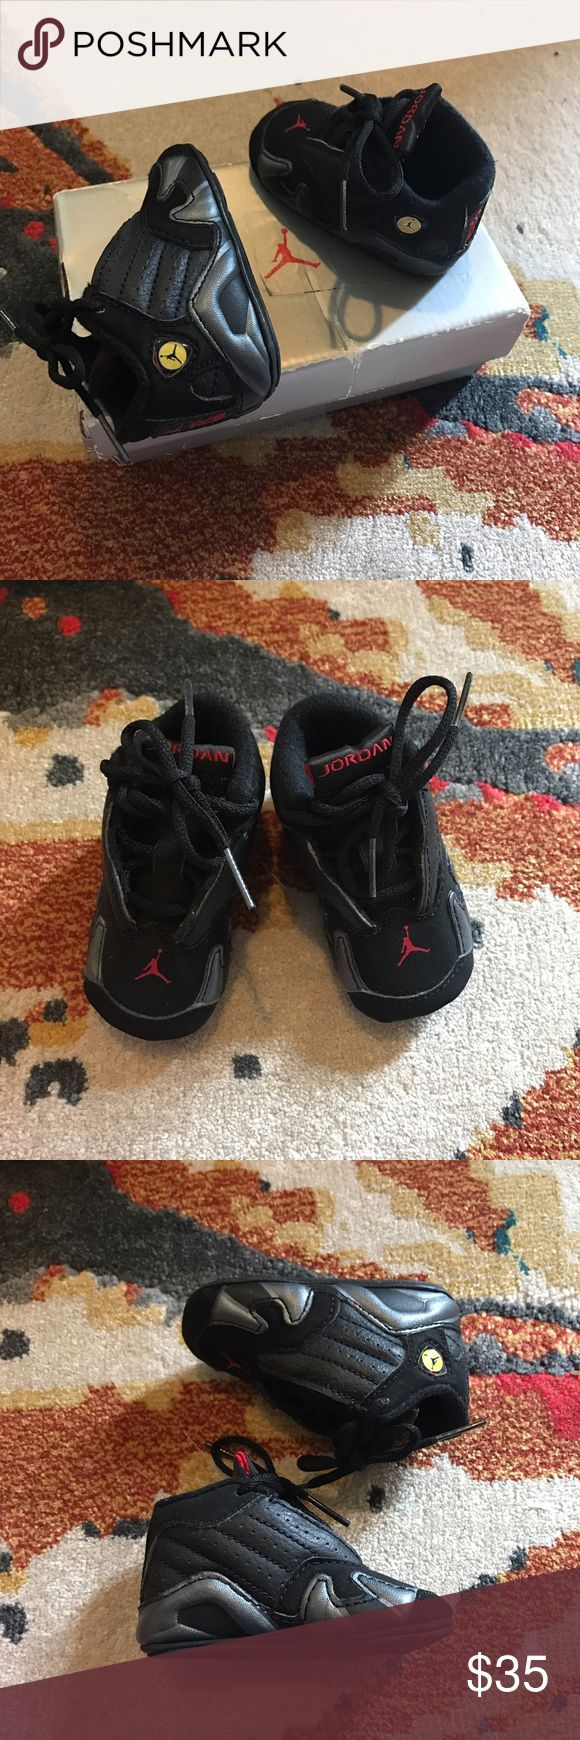 Adorable Black Kid Jordan Shoes Super cute high top air Jordan's for kids - red and black and in great condition! Kids baby shoes : 2C Jordan Shoes Sneakers